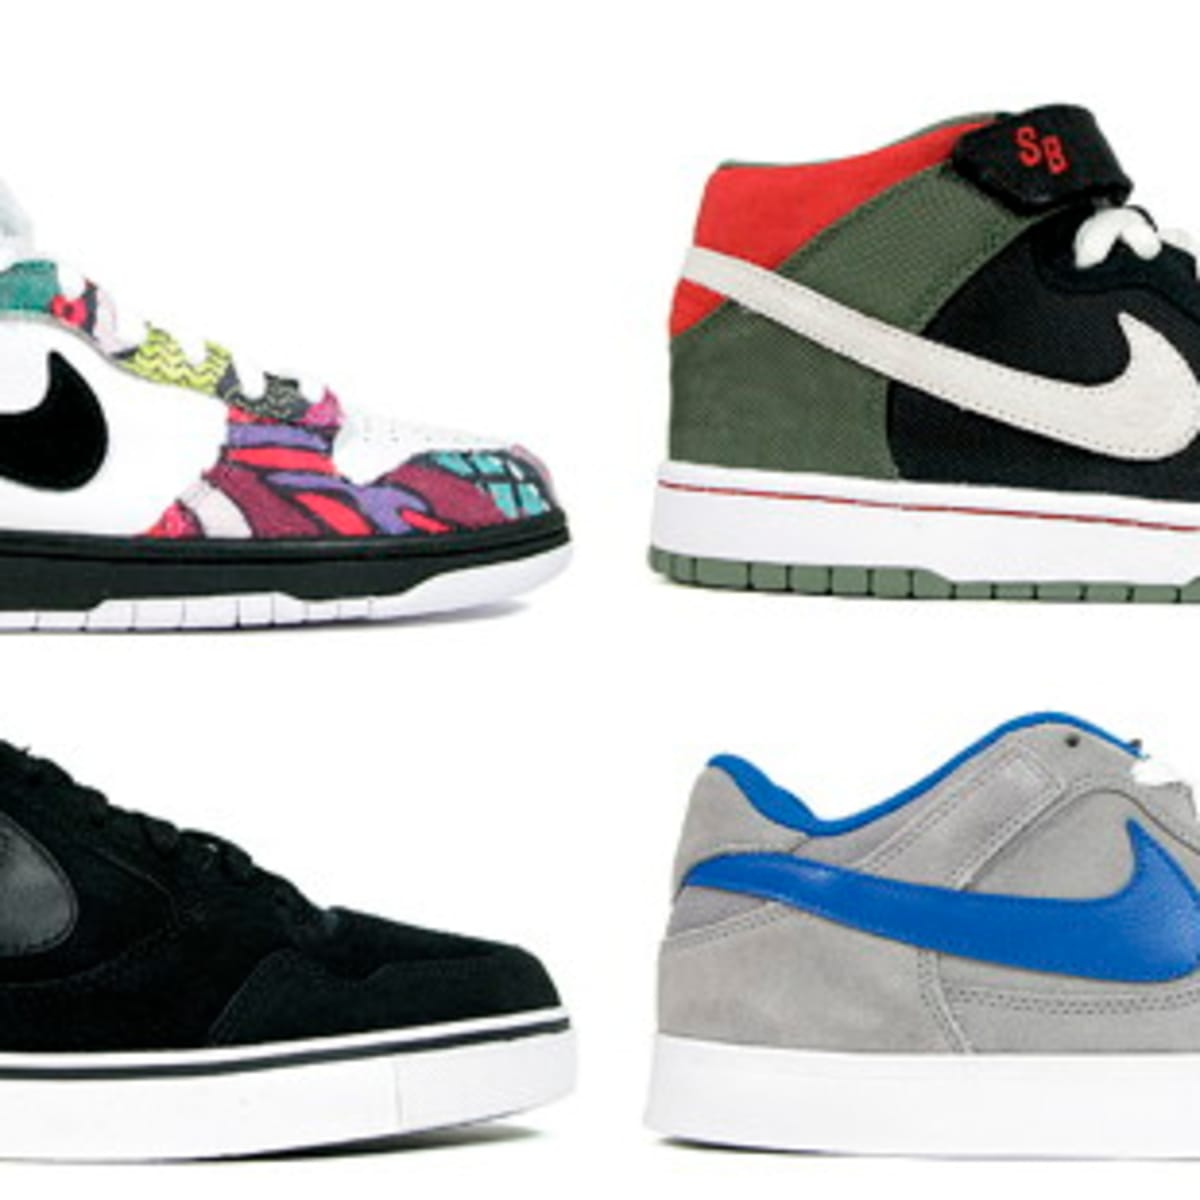 Indefinido Periodo perioperatorio Catedral  Nike SB - February 2010 Footwear   Now Available @ HUF - Freshness Mag